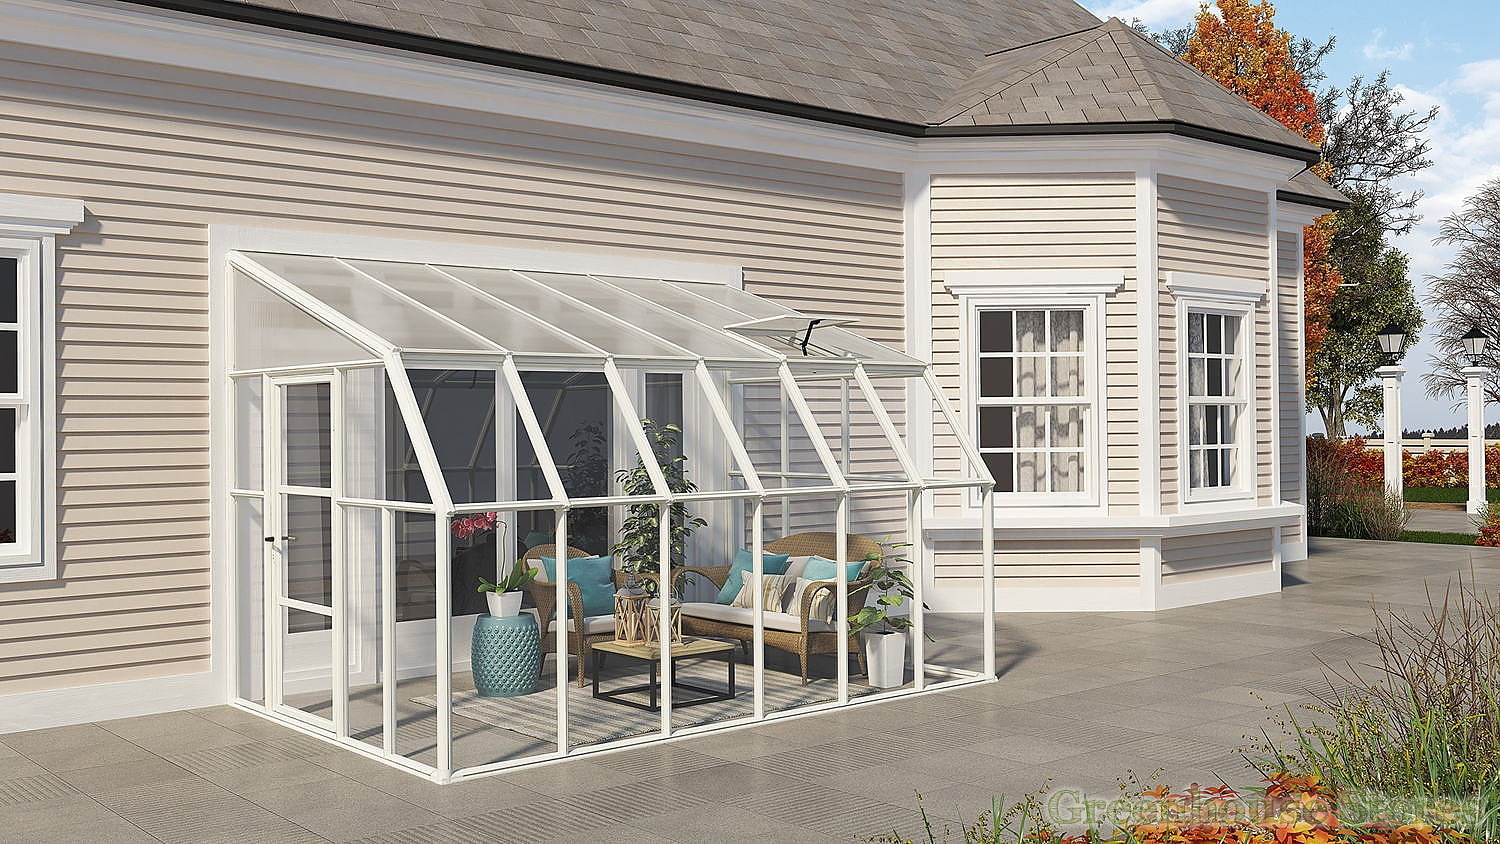 Rion sun room 8x12 lean to greenhouse polycarbonate for Greenhouse sunroom addition